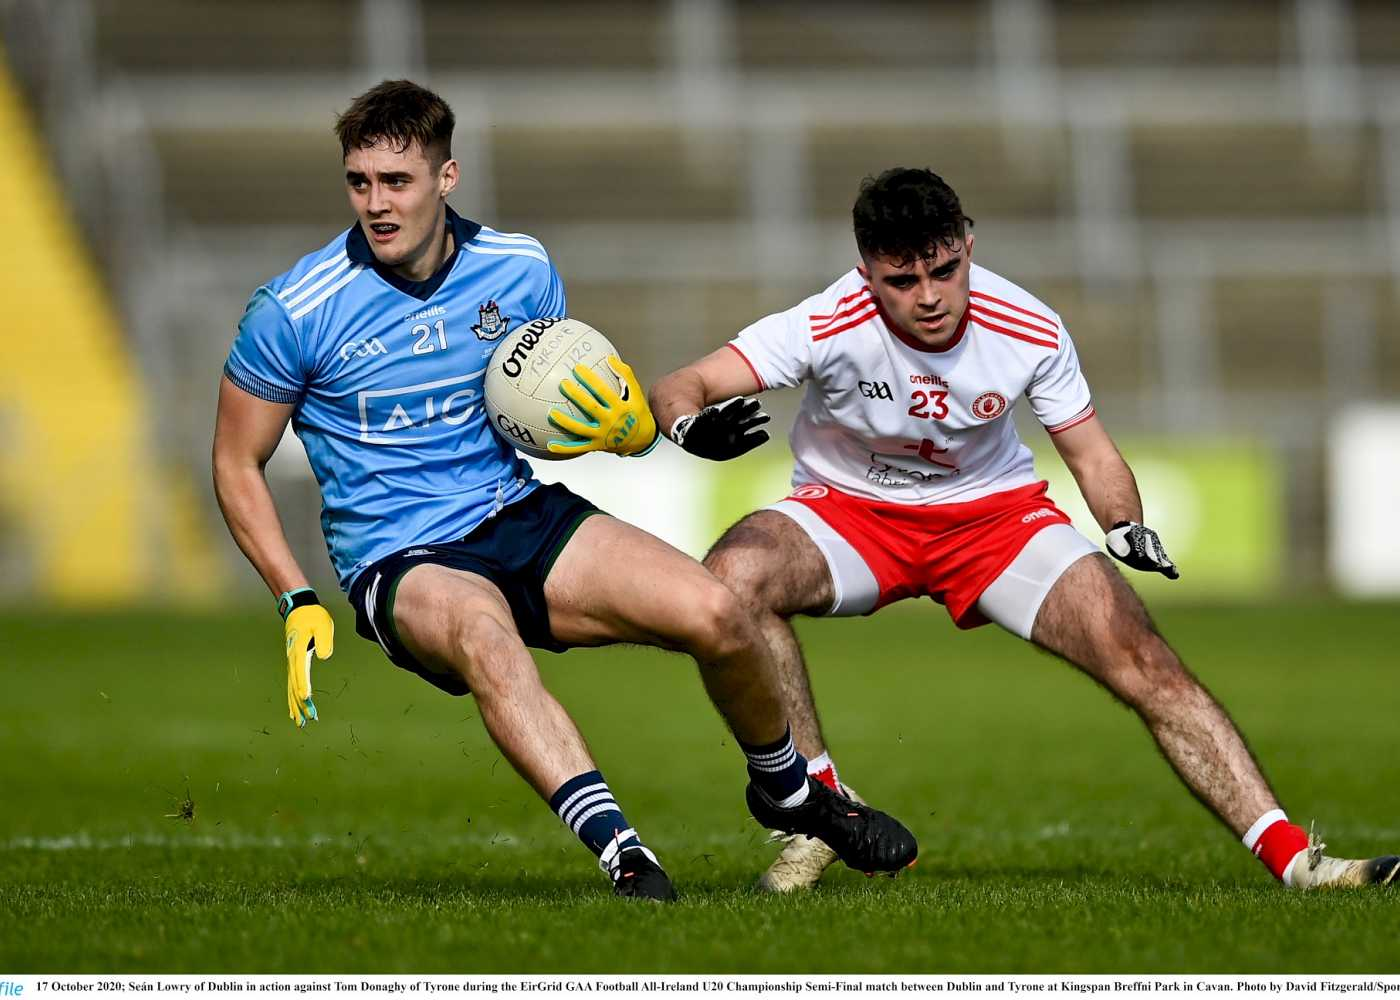 All-Ireland U20FC final part of double-header with senior decider